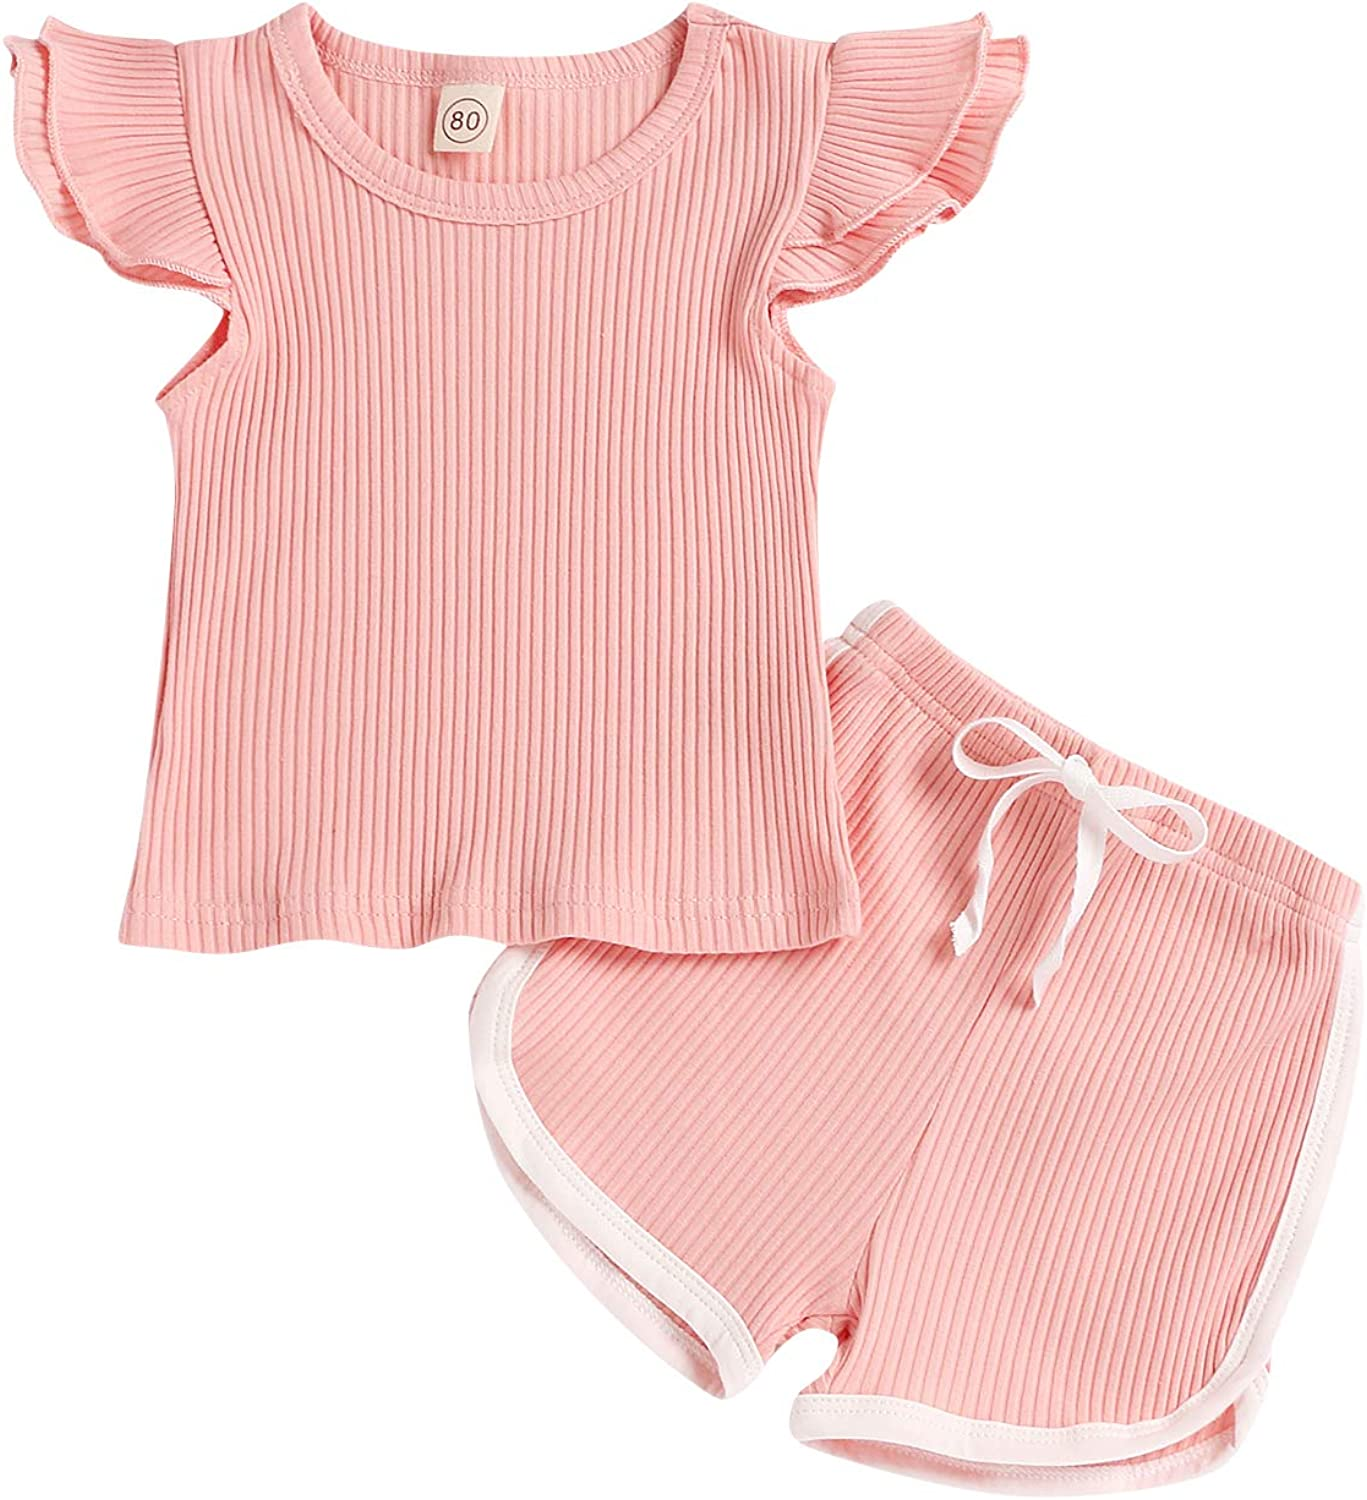 Baby Girls Shorts Outfits Set Toddler Girls Fly Sleeve T-Shirt and Shorts 2Pcs Solid Color Summer Clothes Set